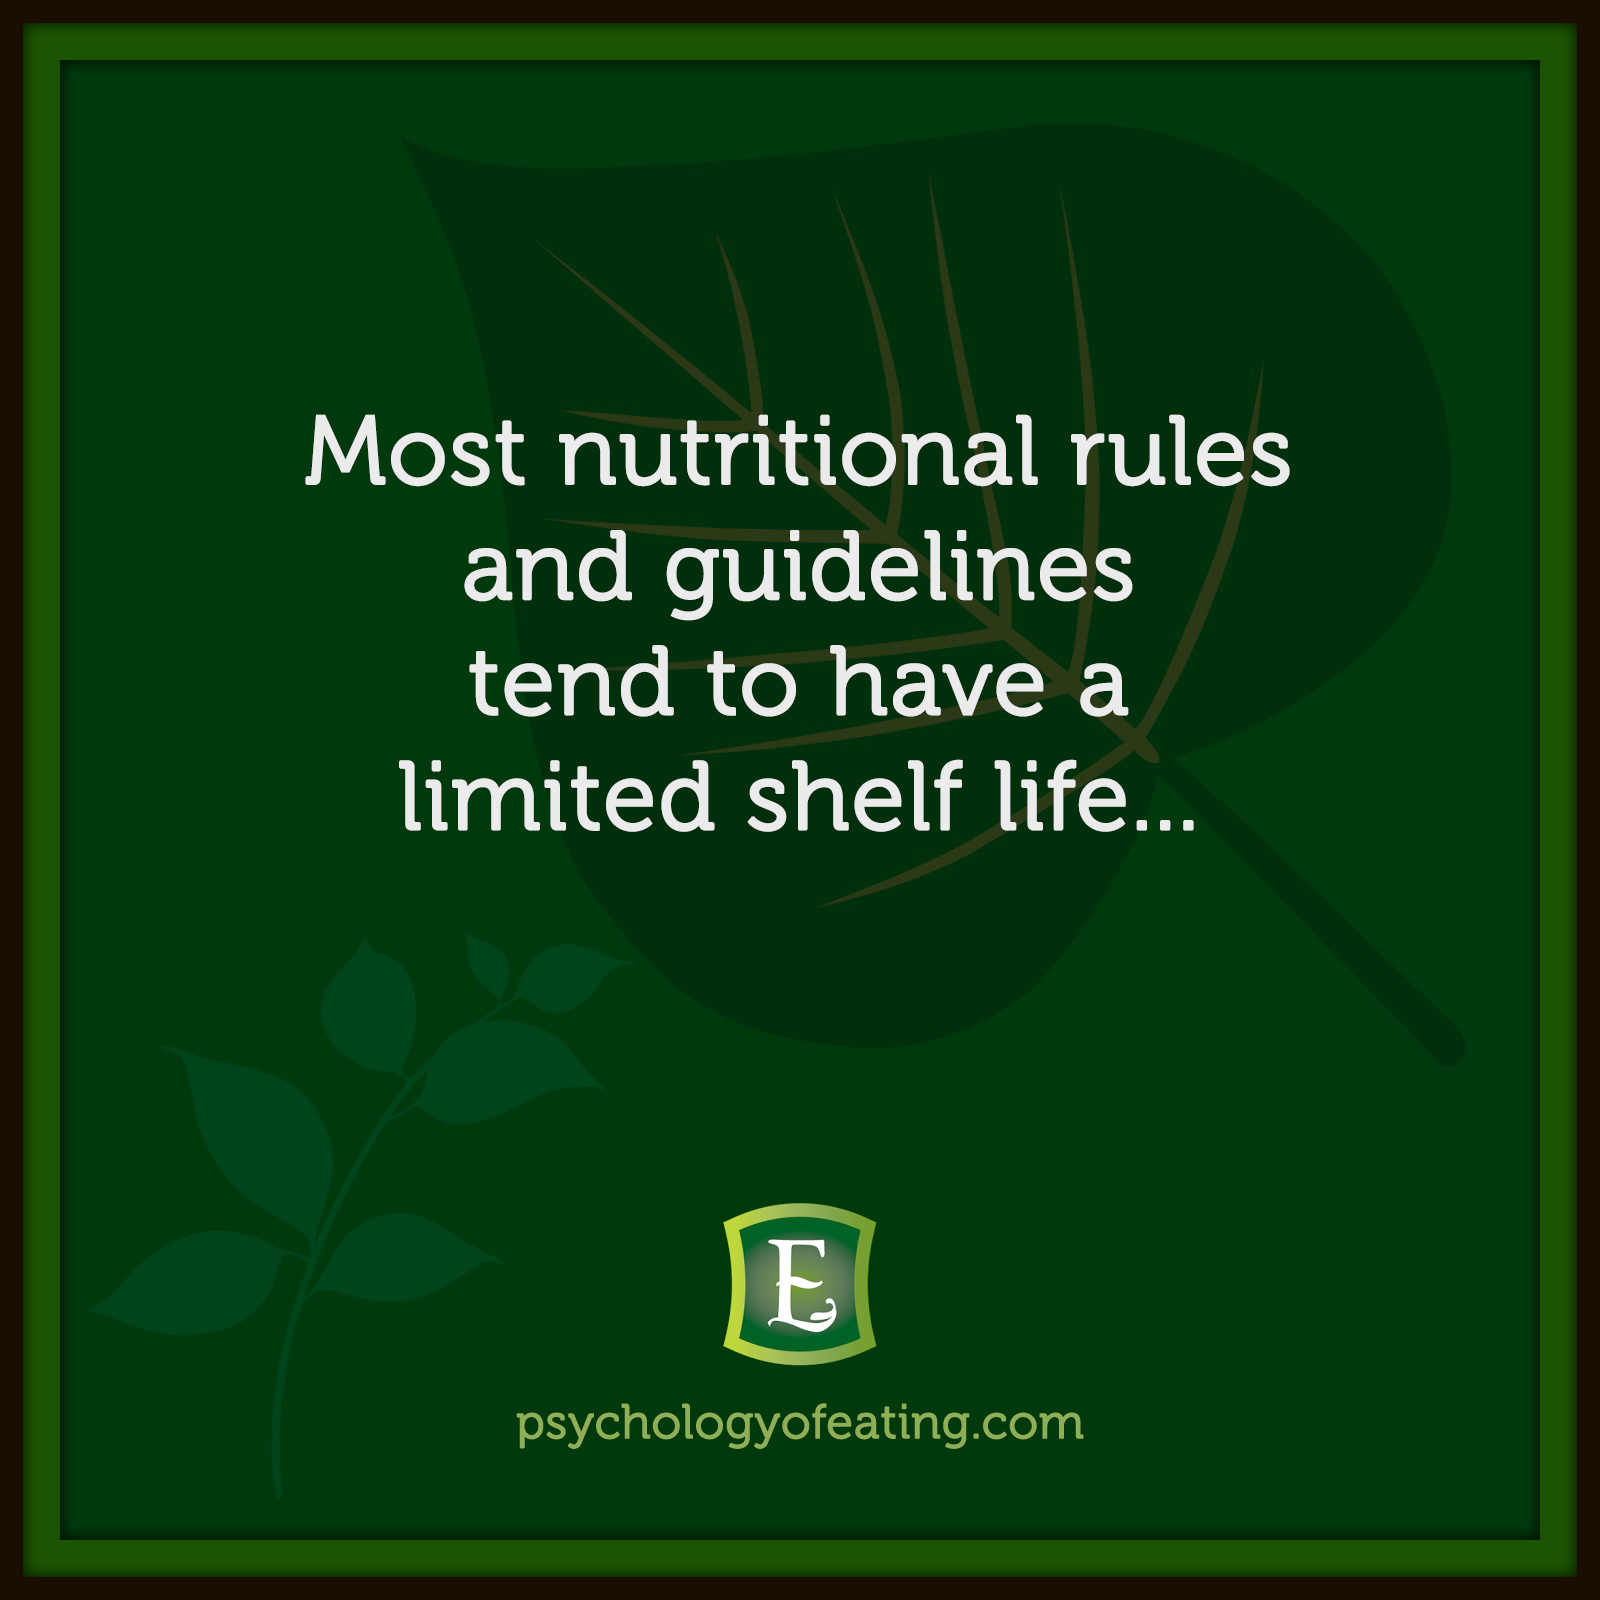 Most nutritional rules and guidelines tend to have a limited shelf life… #health #nutrition #eatingpsychology #IPE